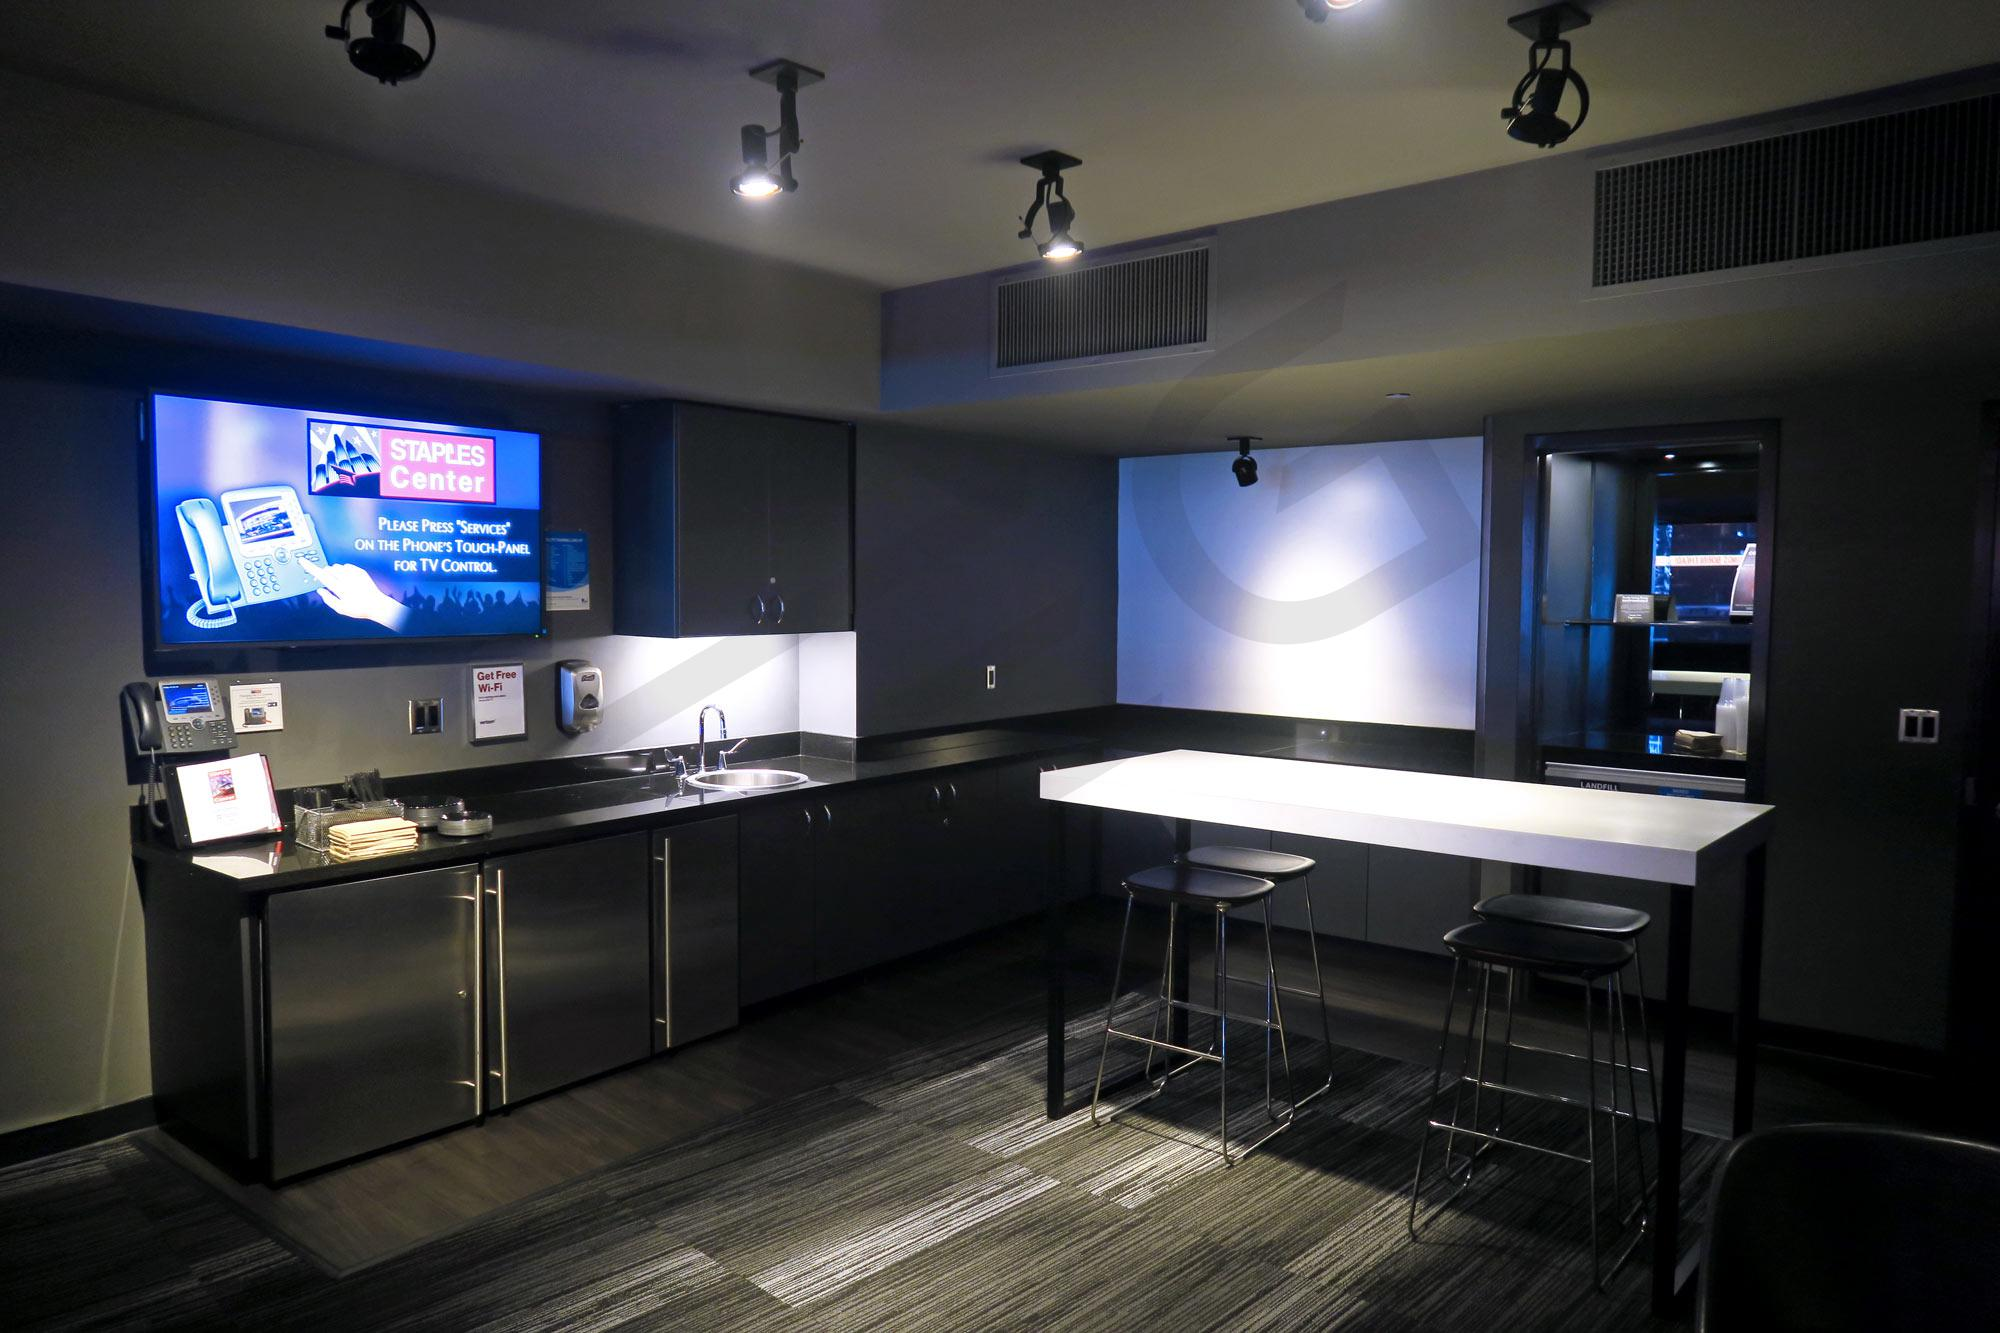 Los Angeles Lakers Suite Rentals | Staples Center | Suite Experience on what time does radio shack close, what time does starbucks close, what time does rite aid close, what time does costco close, what time does toys r us close,